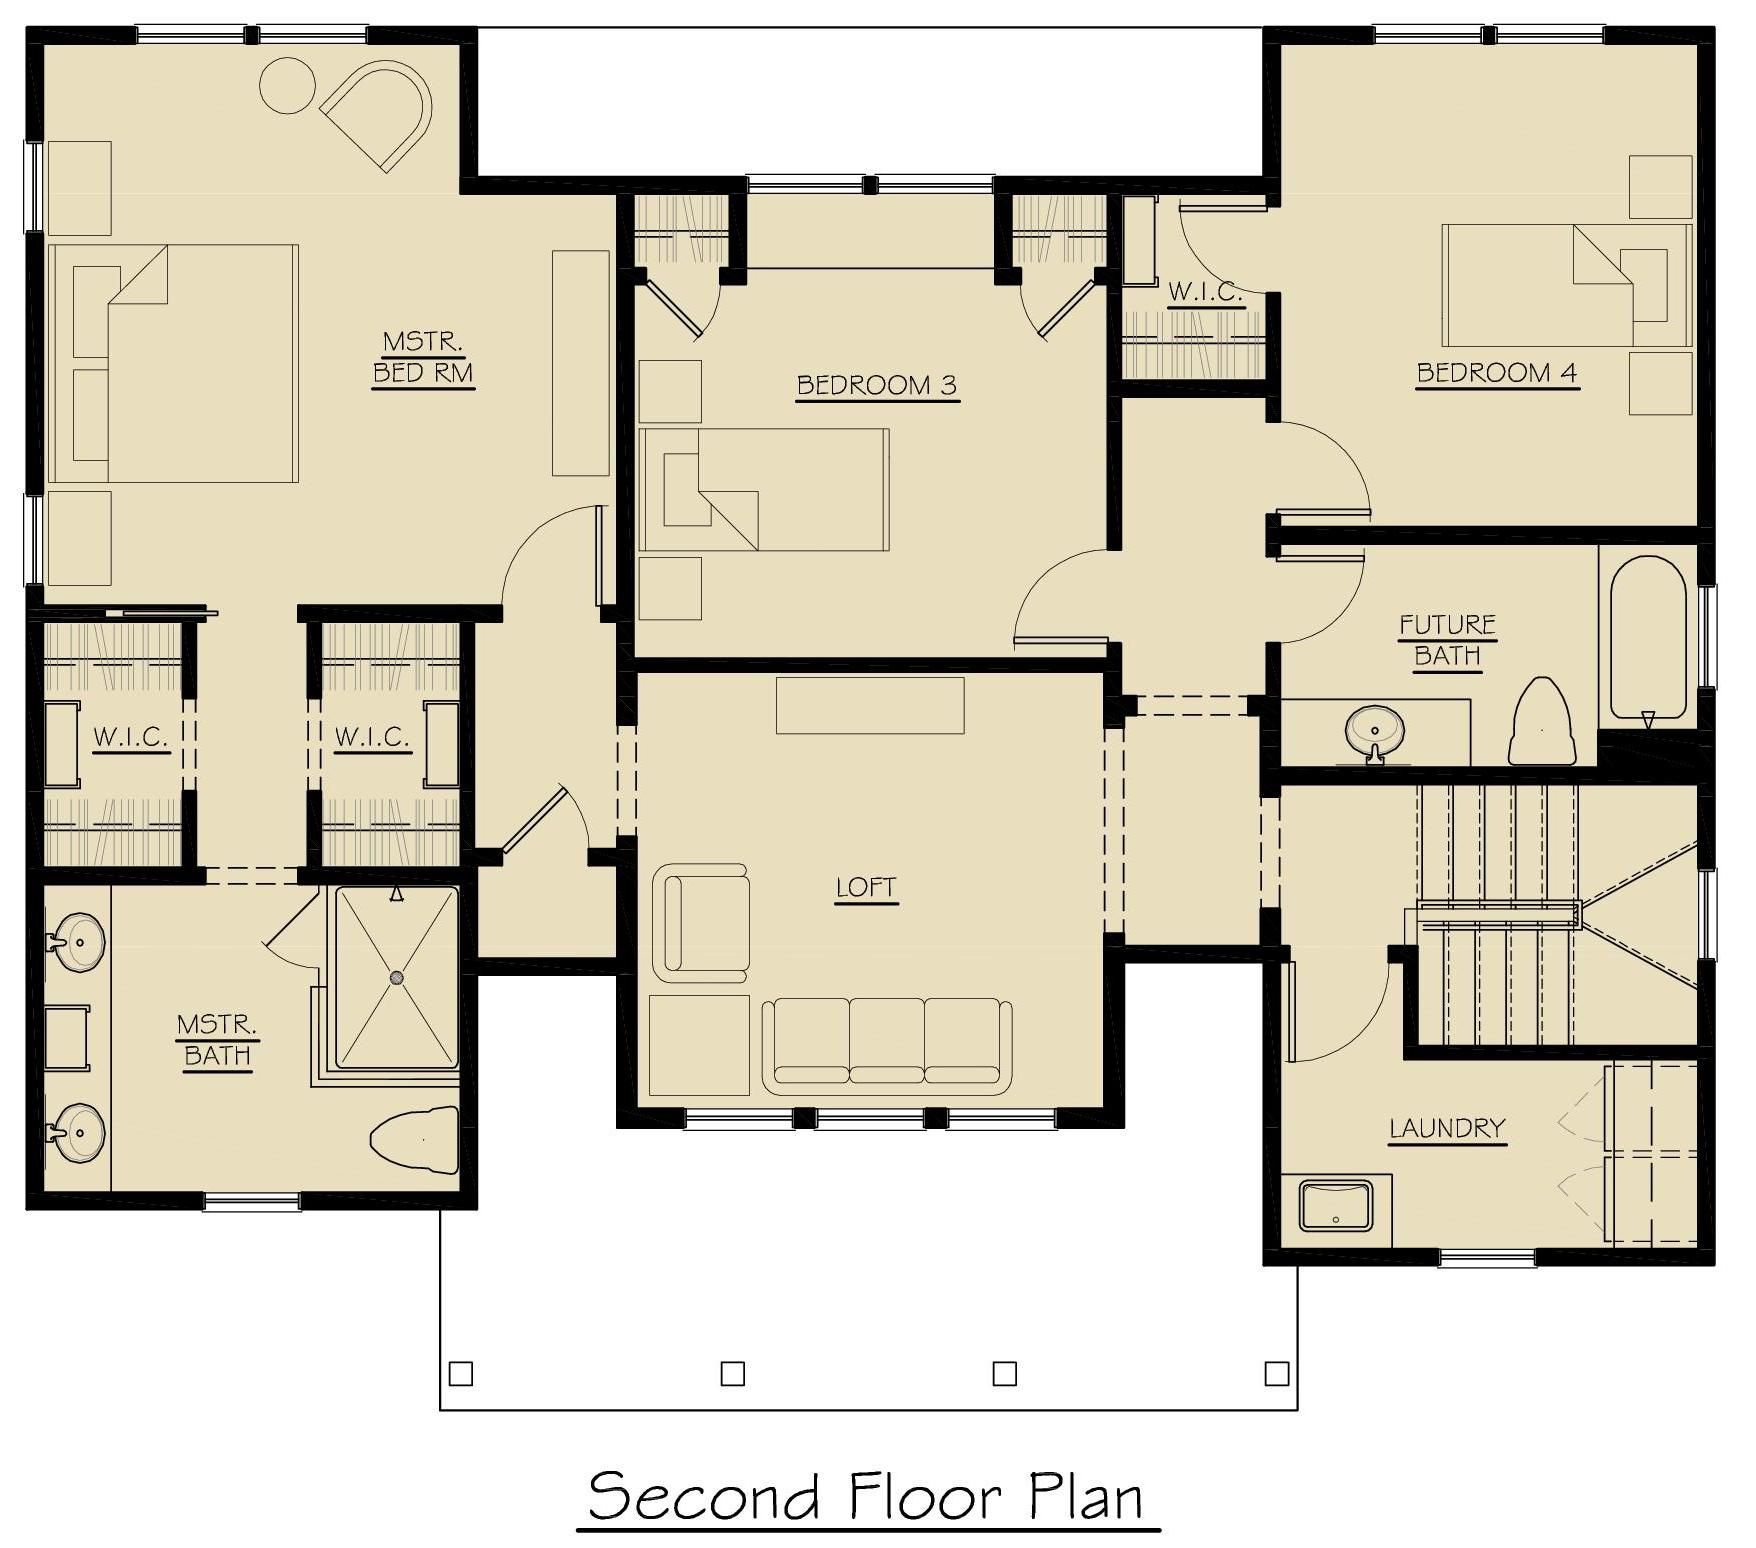 Cool Post About Adding A Second Floor